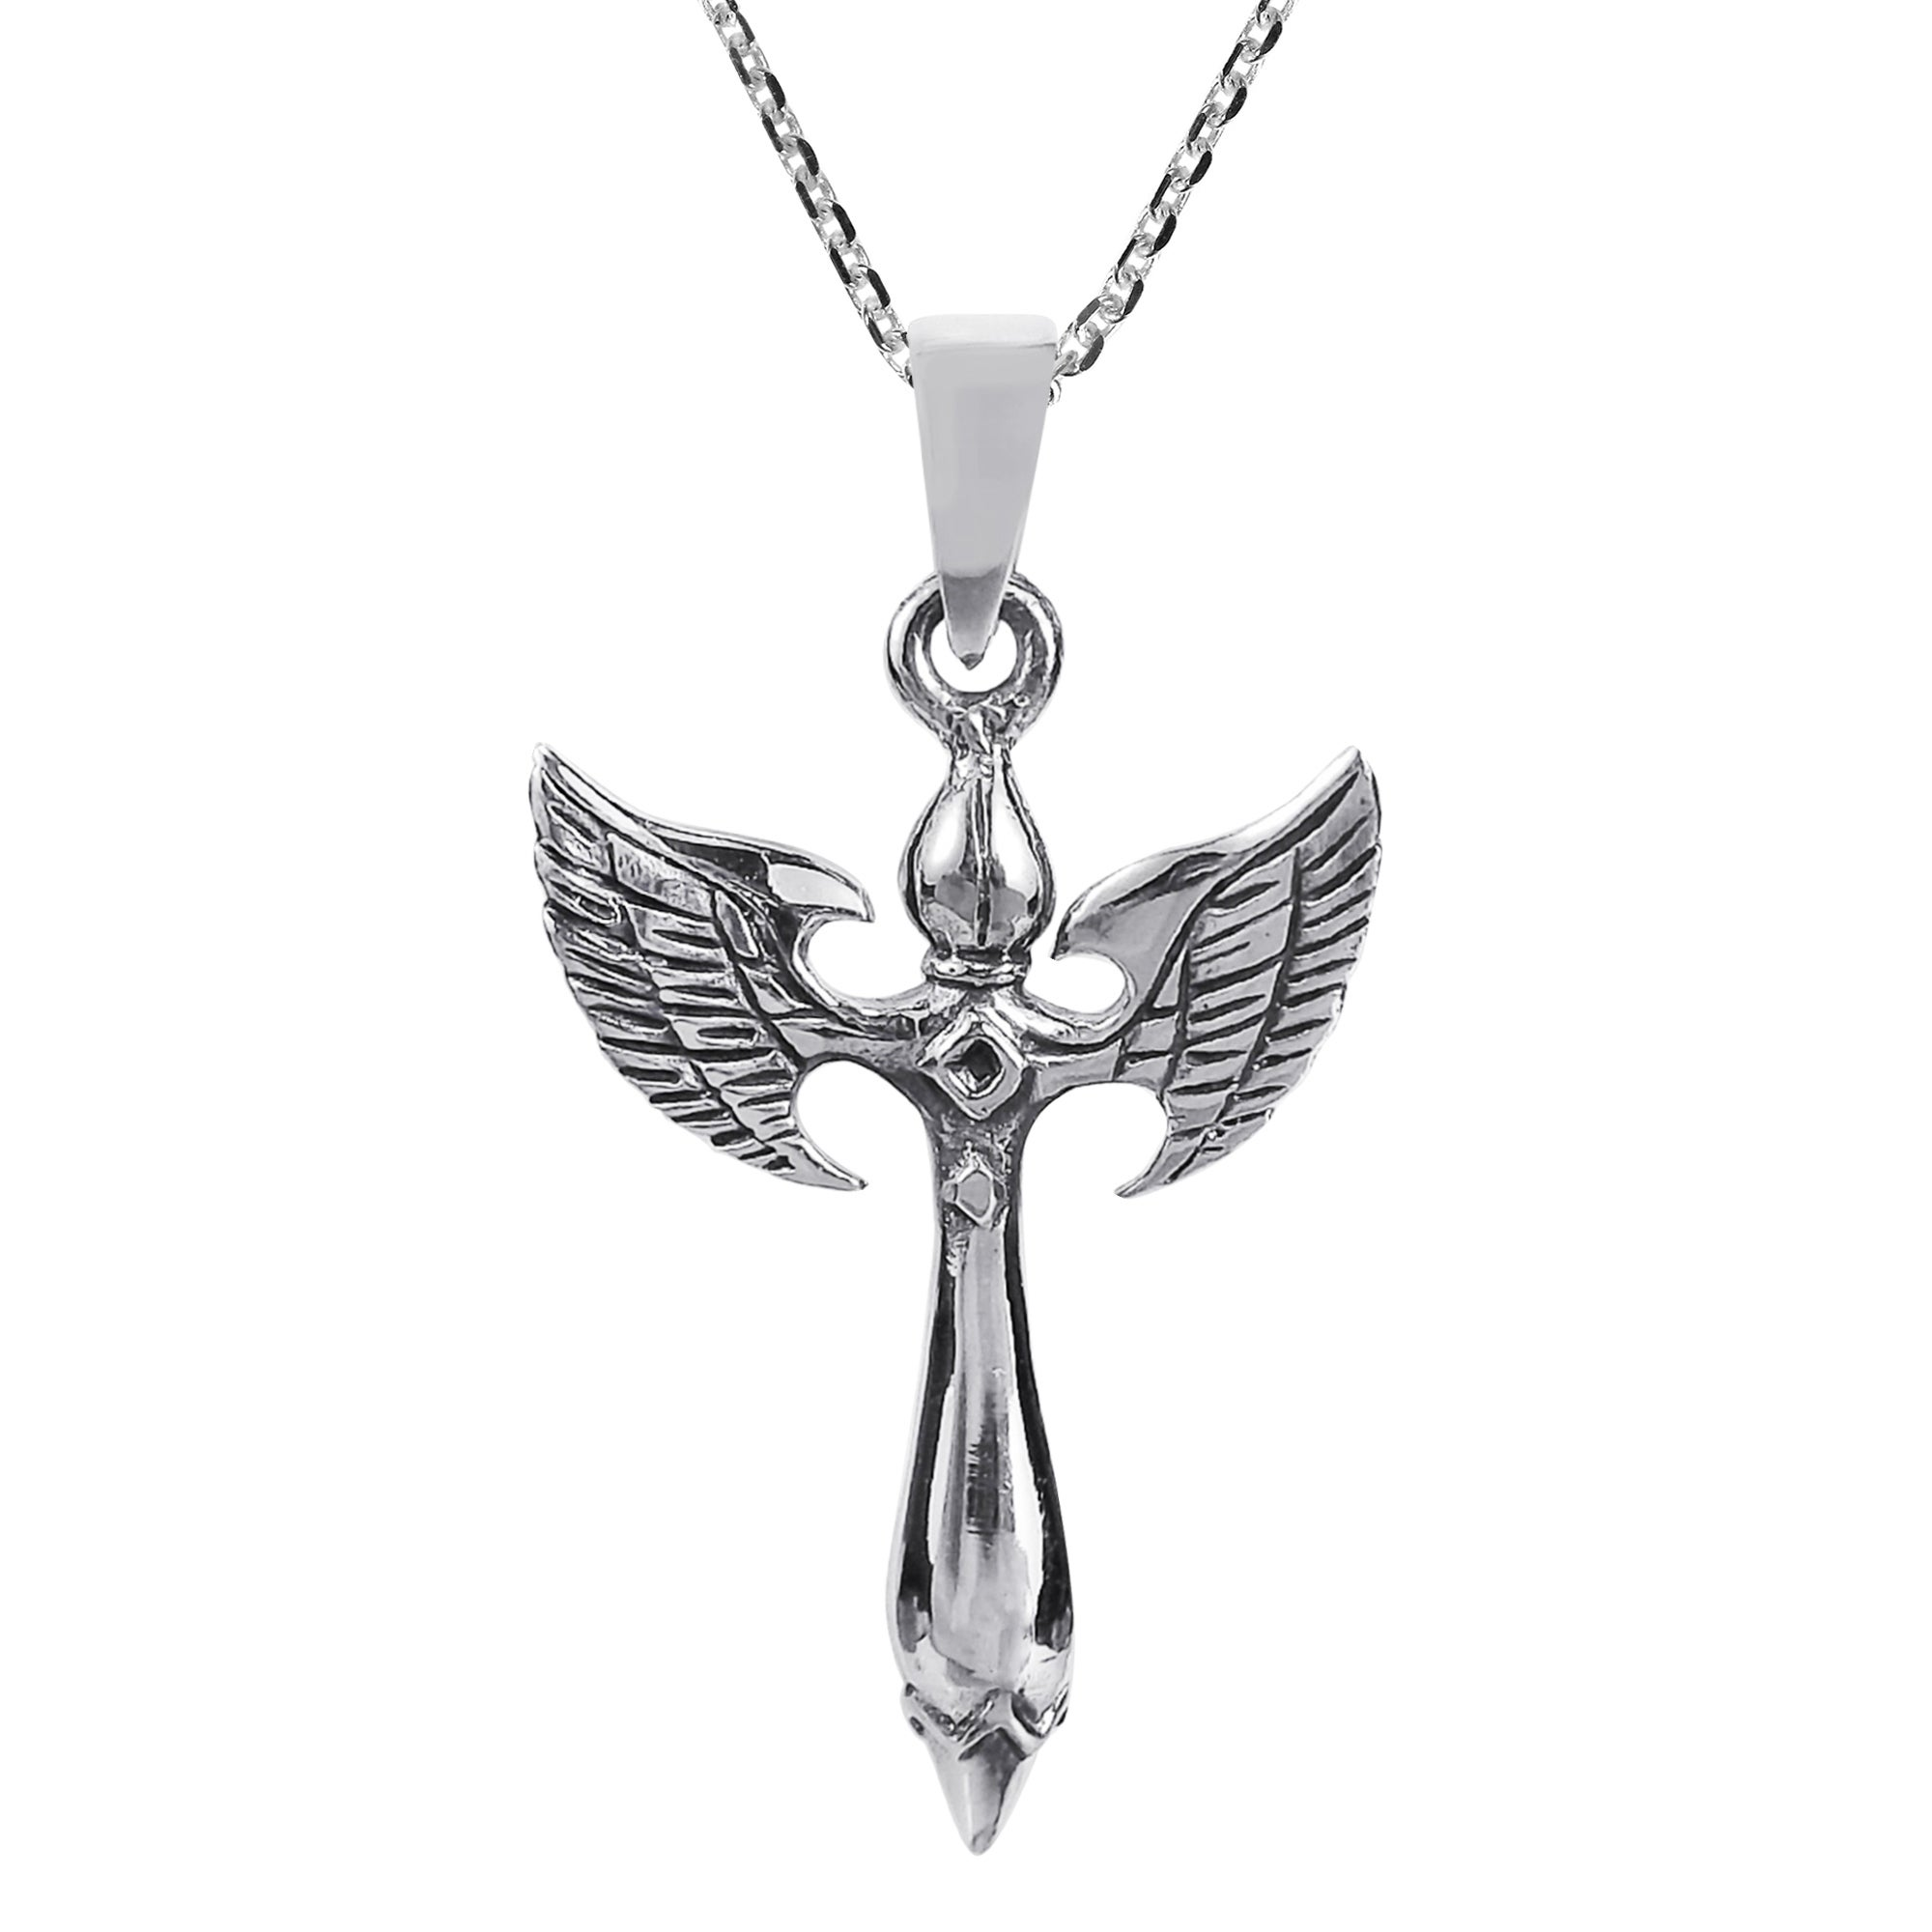 svaha silver sterling apparel necklace honey honeybee winged bee image products